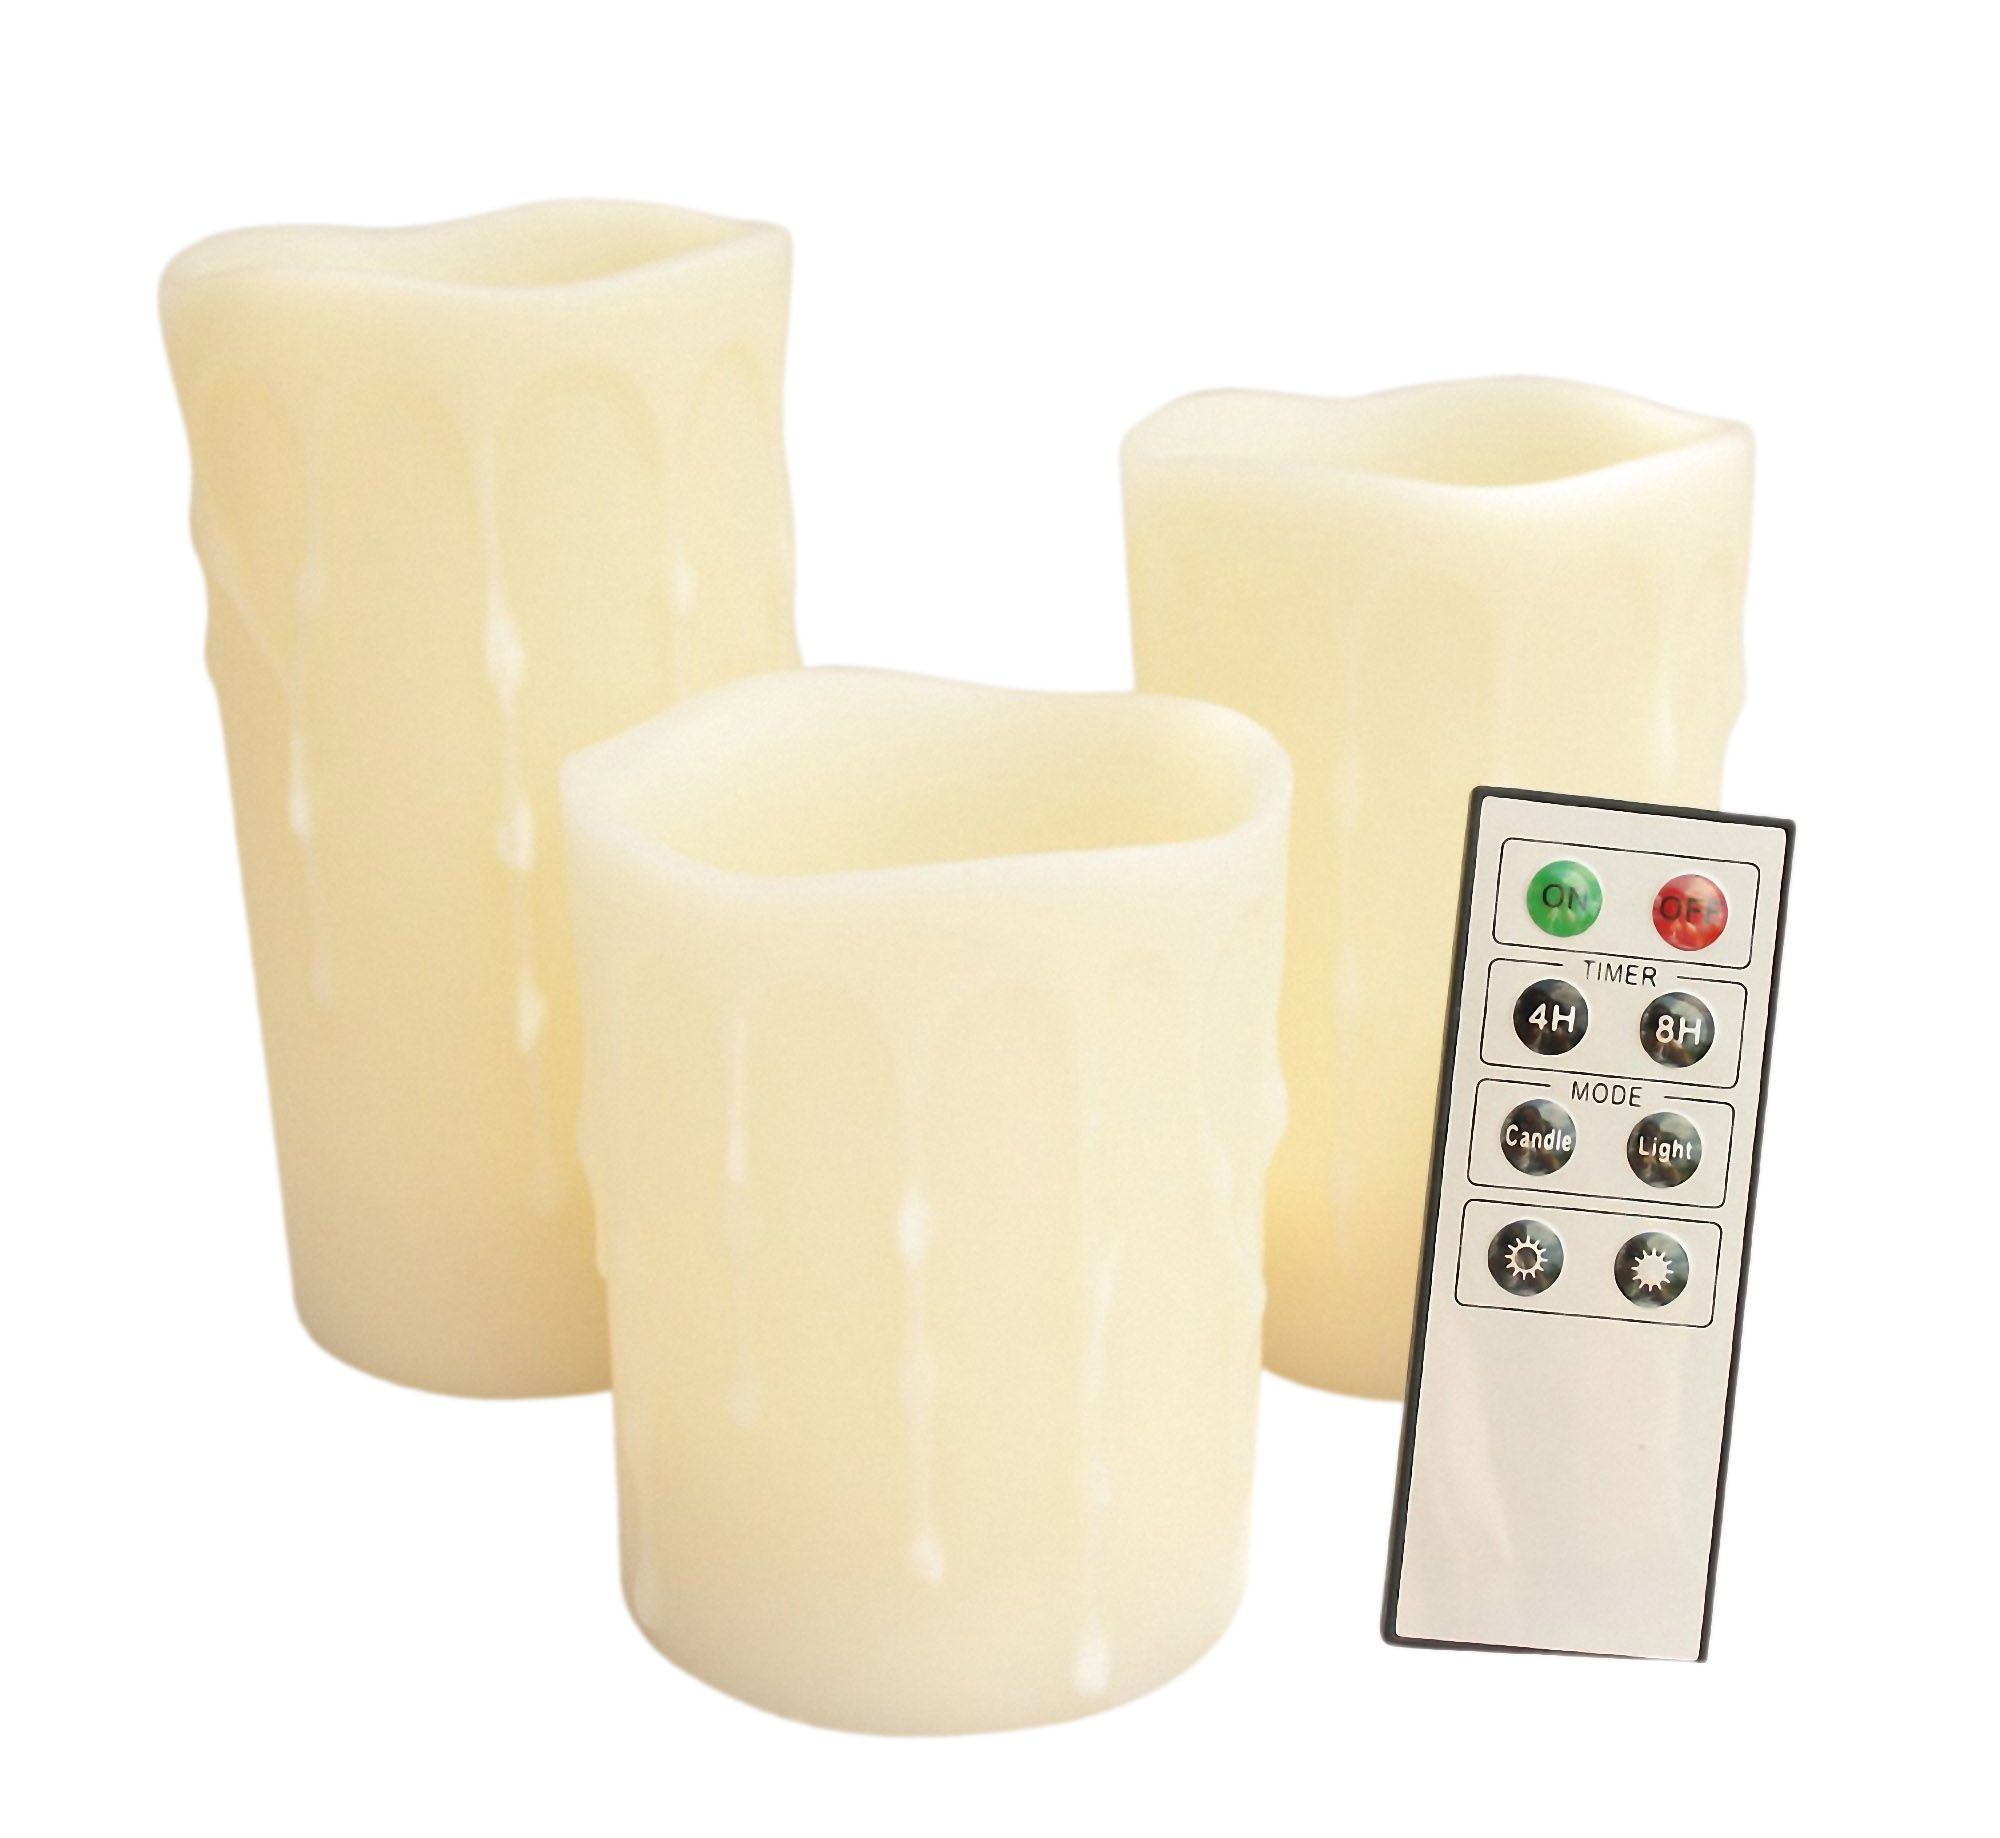 "Candle Choice Set of 3 Remote Control Flameless Wax Pillar LED Candles with Melted Edge Wax Drip Effect, Battery Operated  - 4"",5"" and 6"" tall"